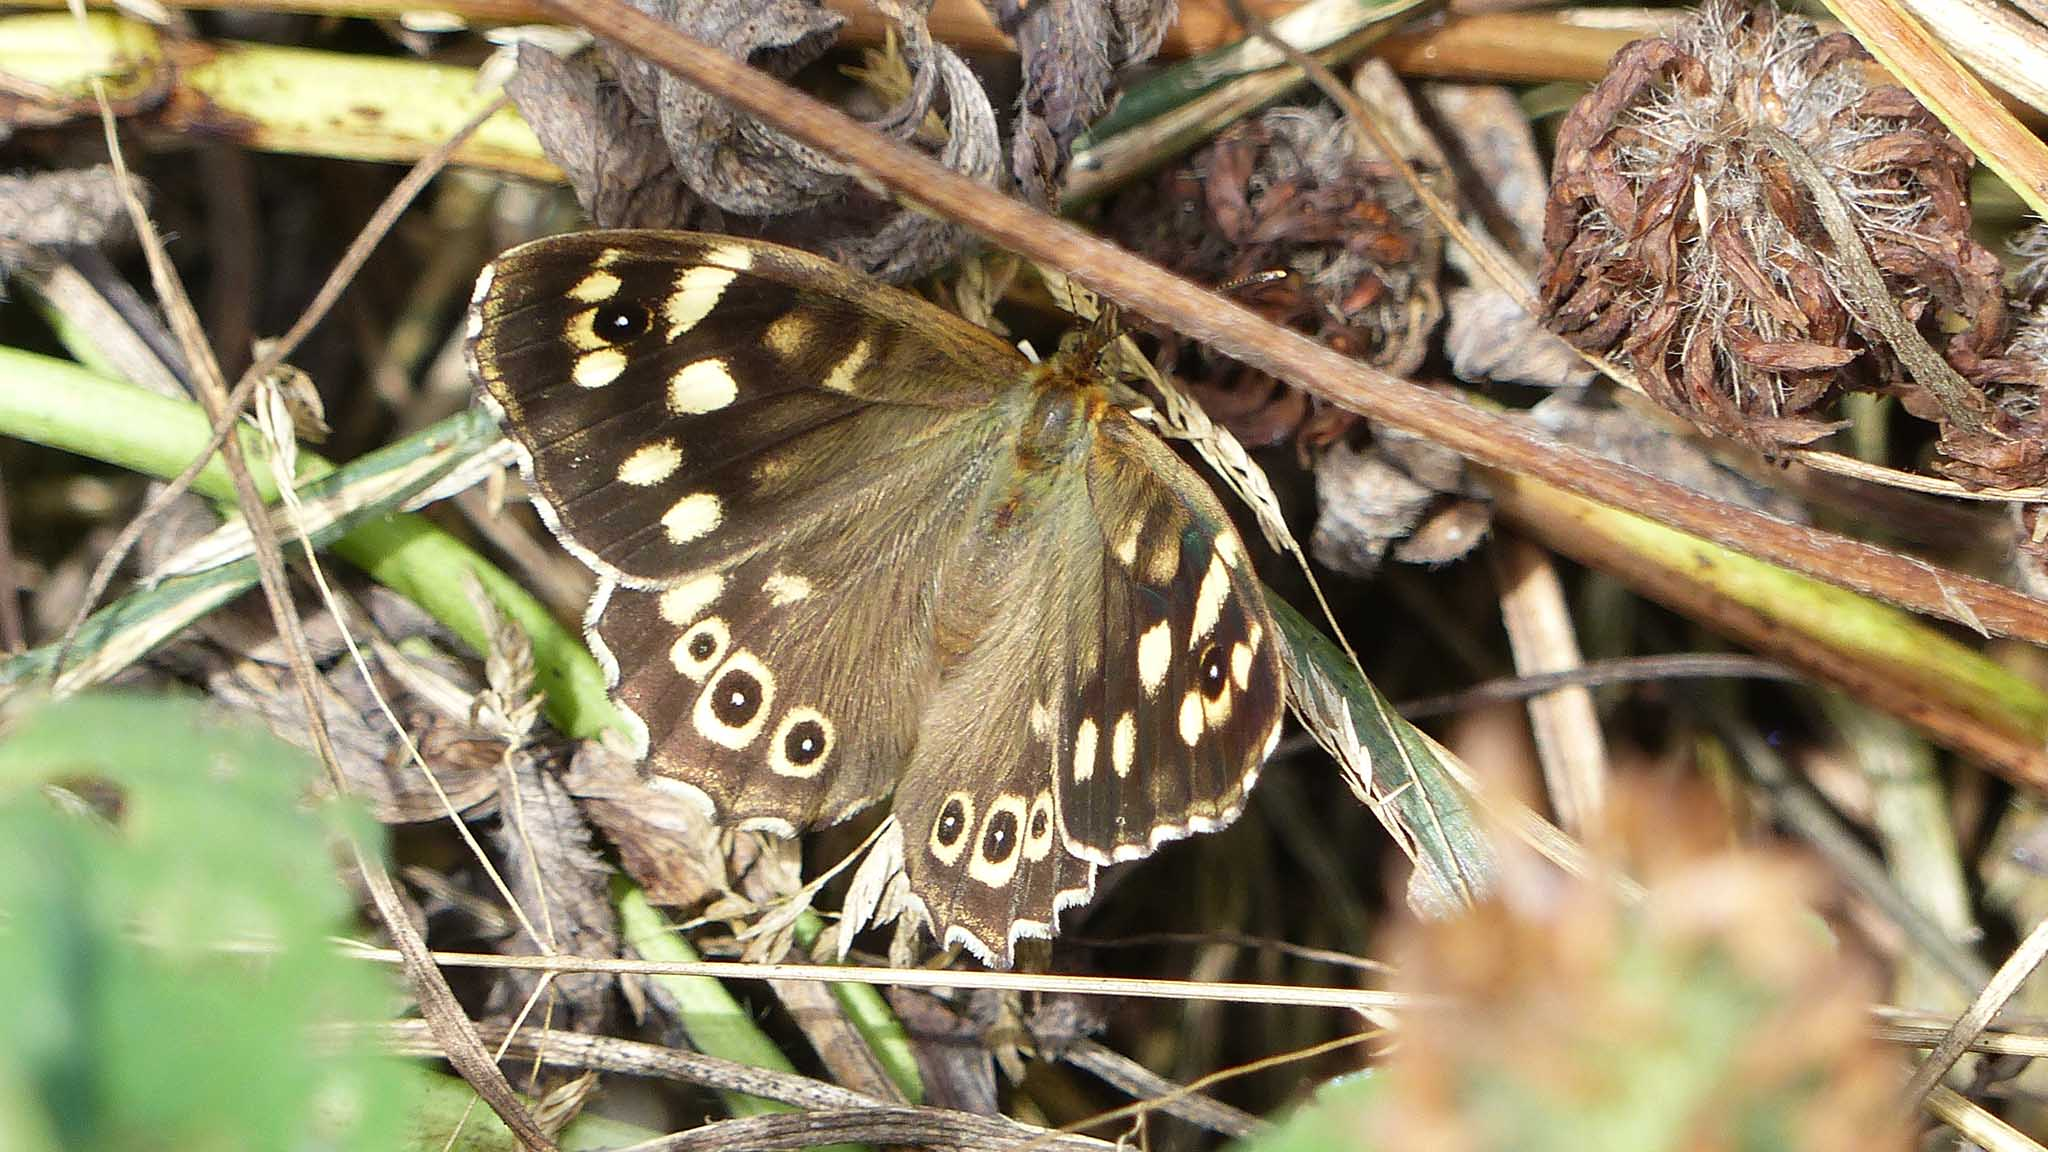 Speckled Wood. Photo by Steve Turner